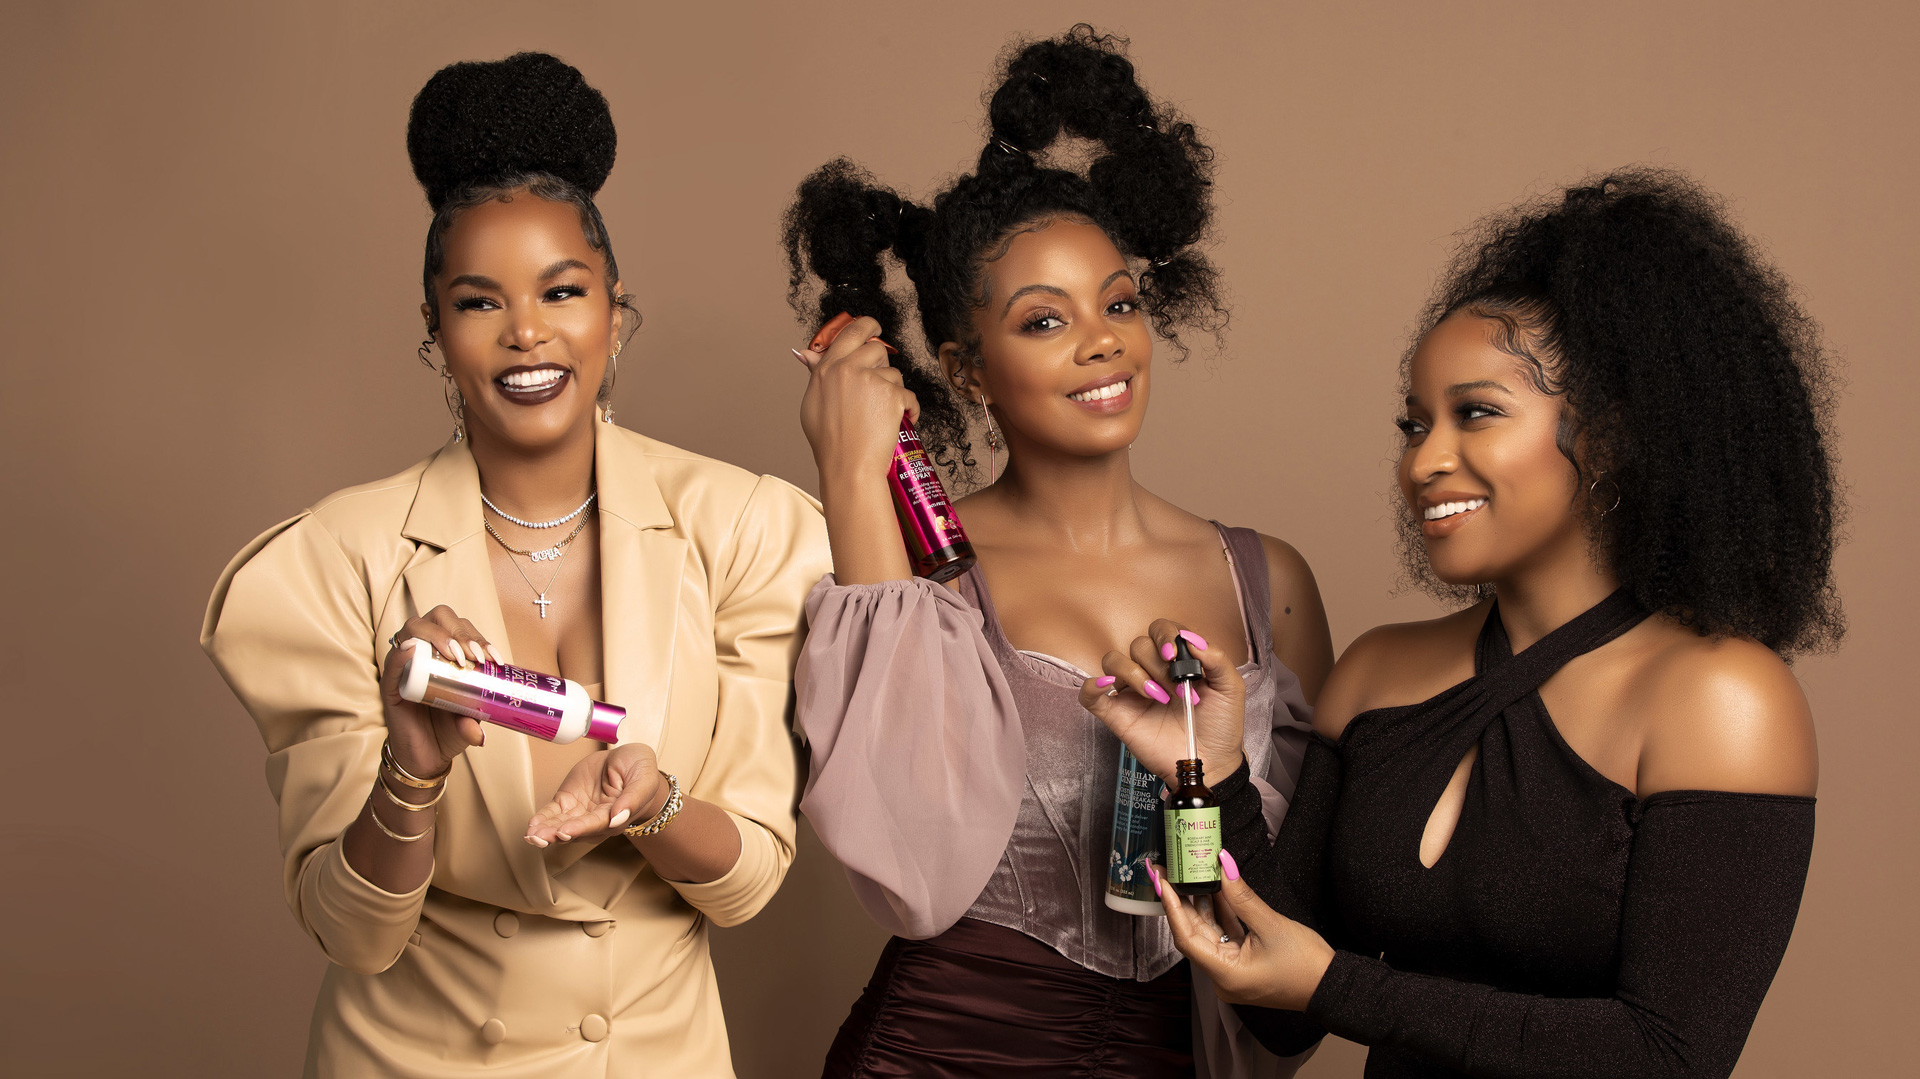 three black women smiling holding hair care products